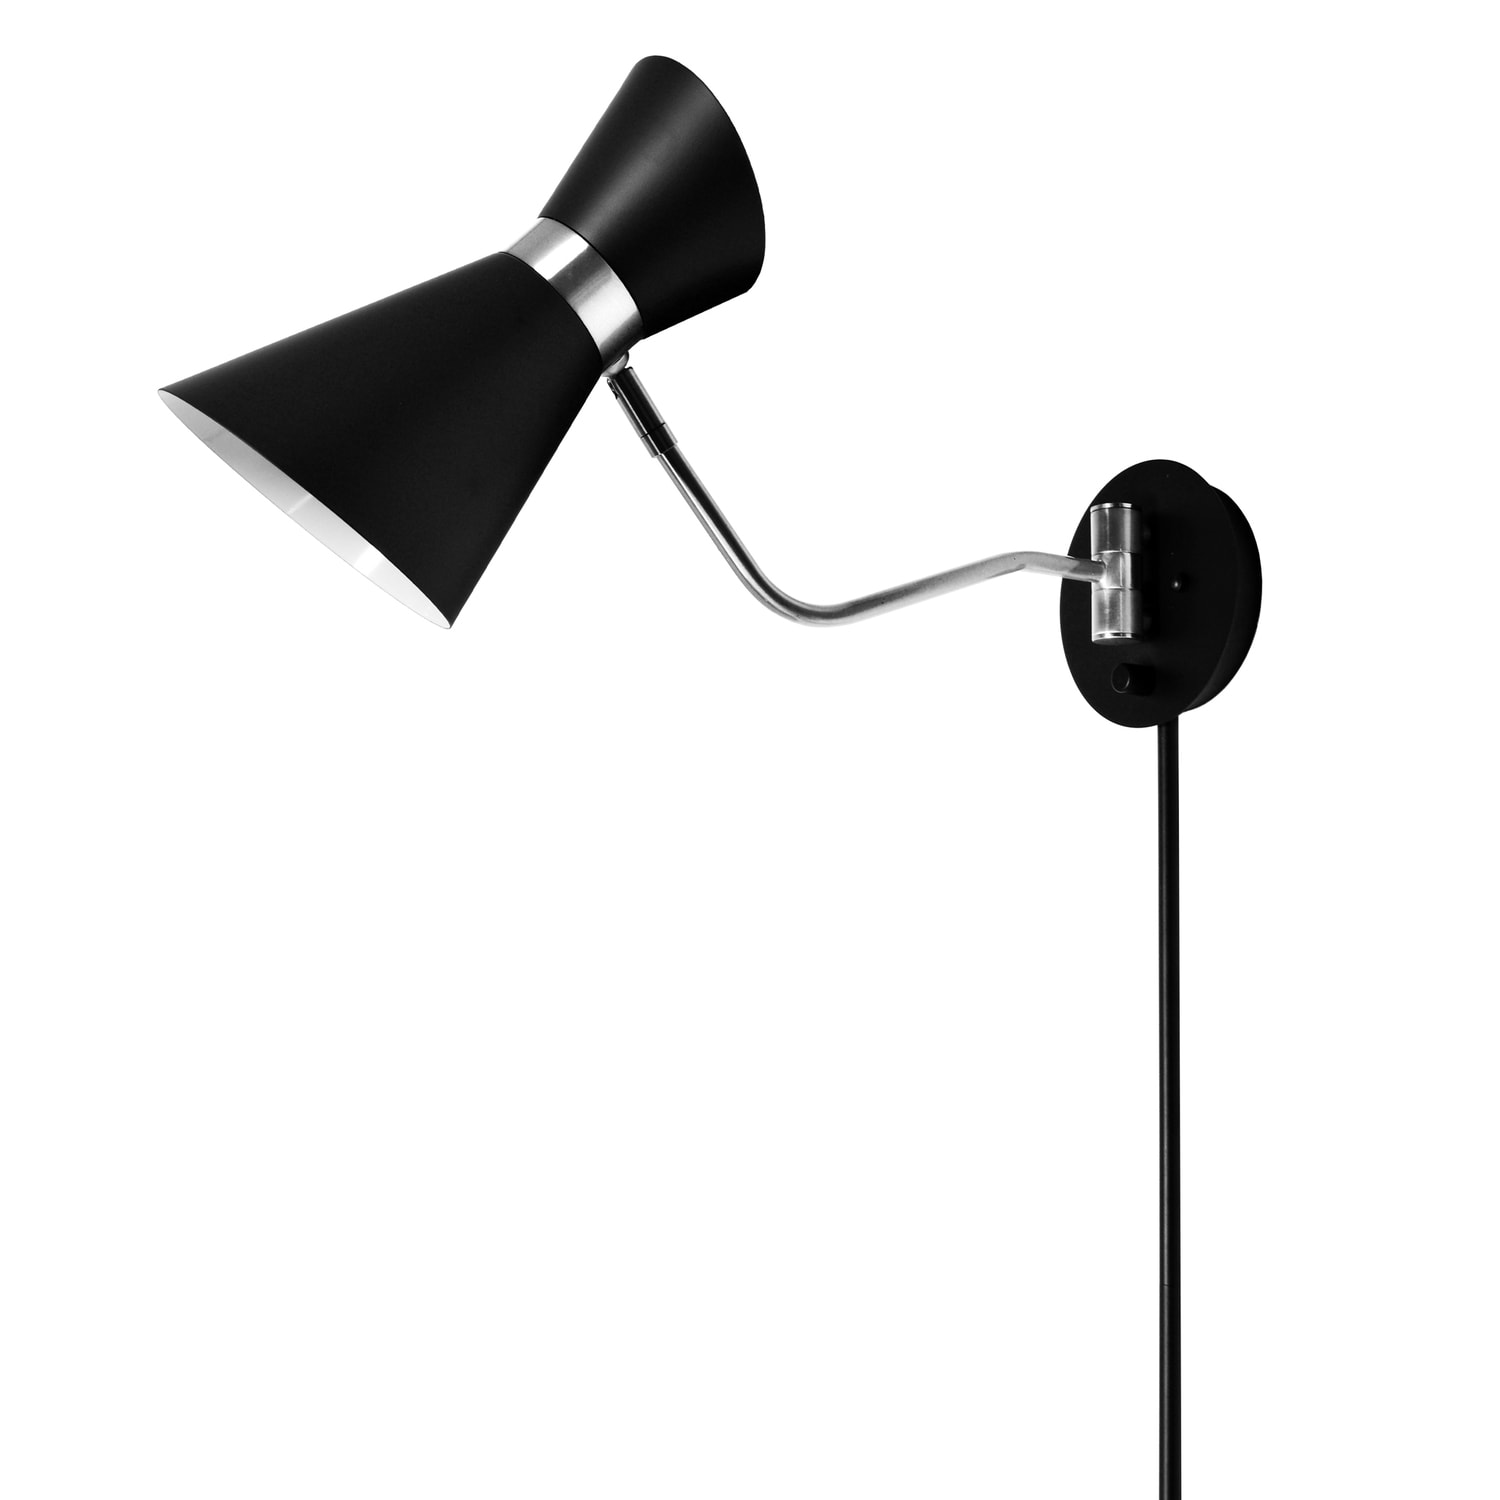 Dainolite 1 Light Wall Lamp, Black & Polished Chrome Finish by Dainolite Ltd